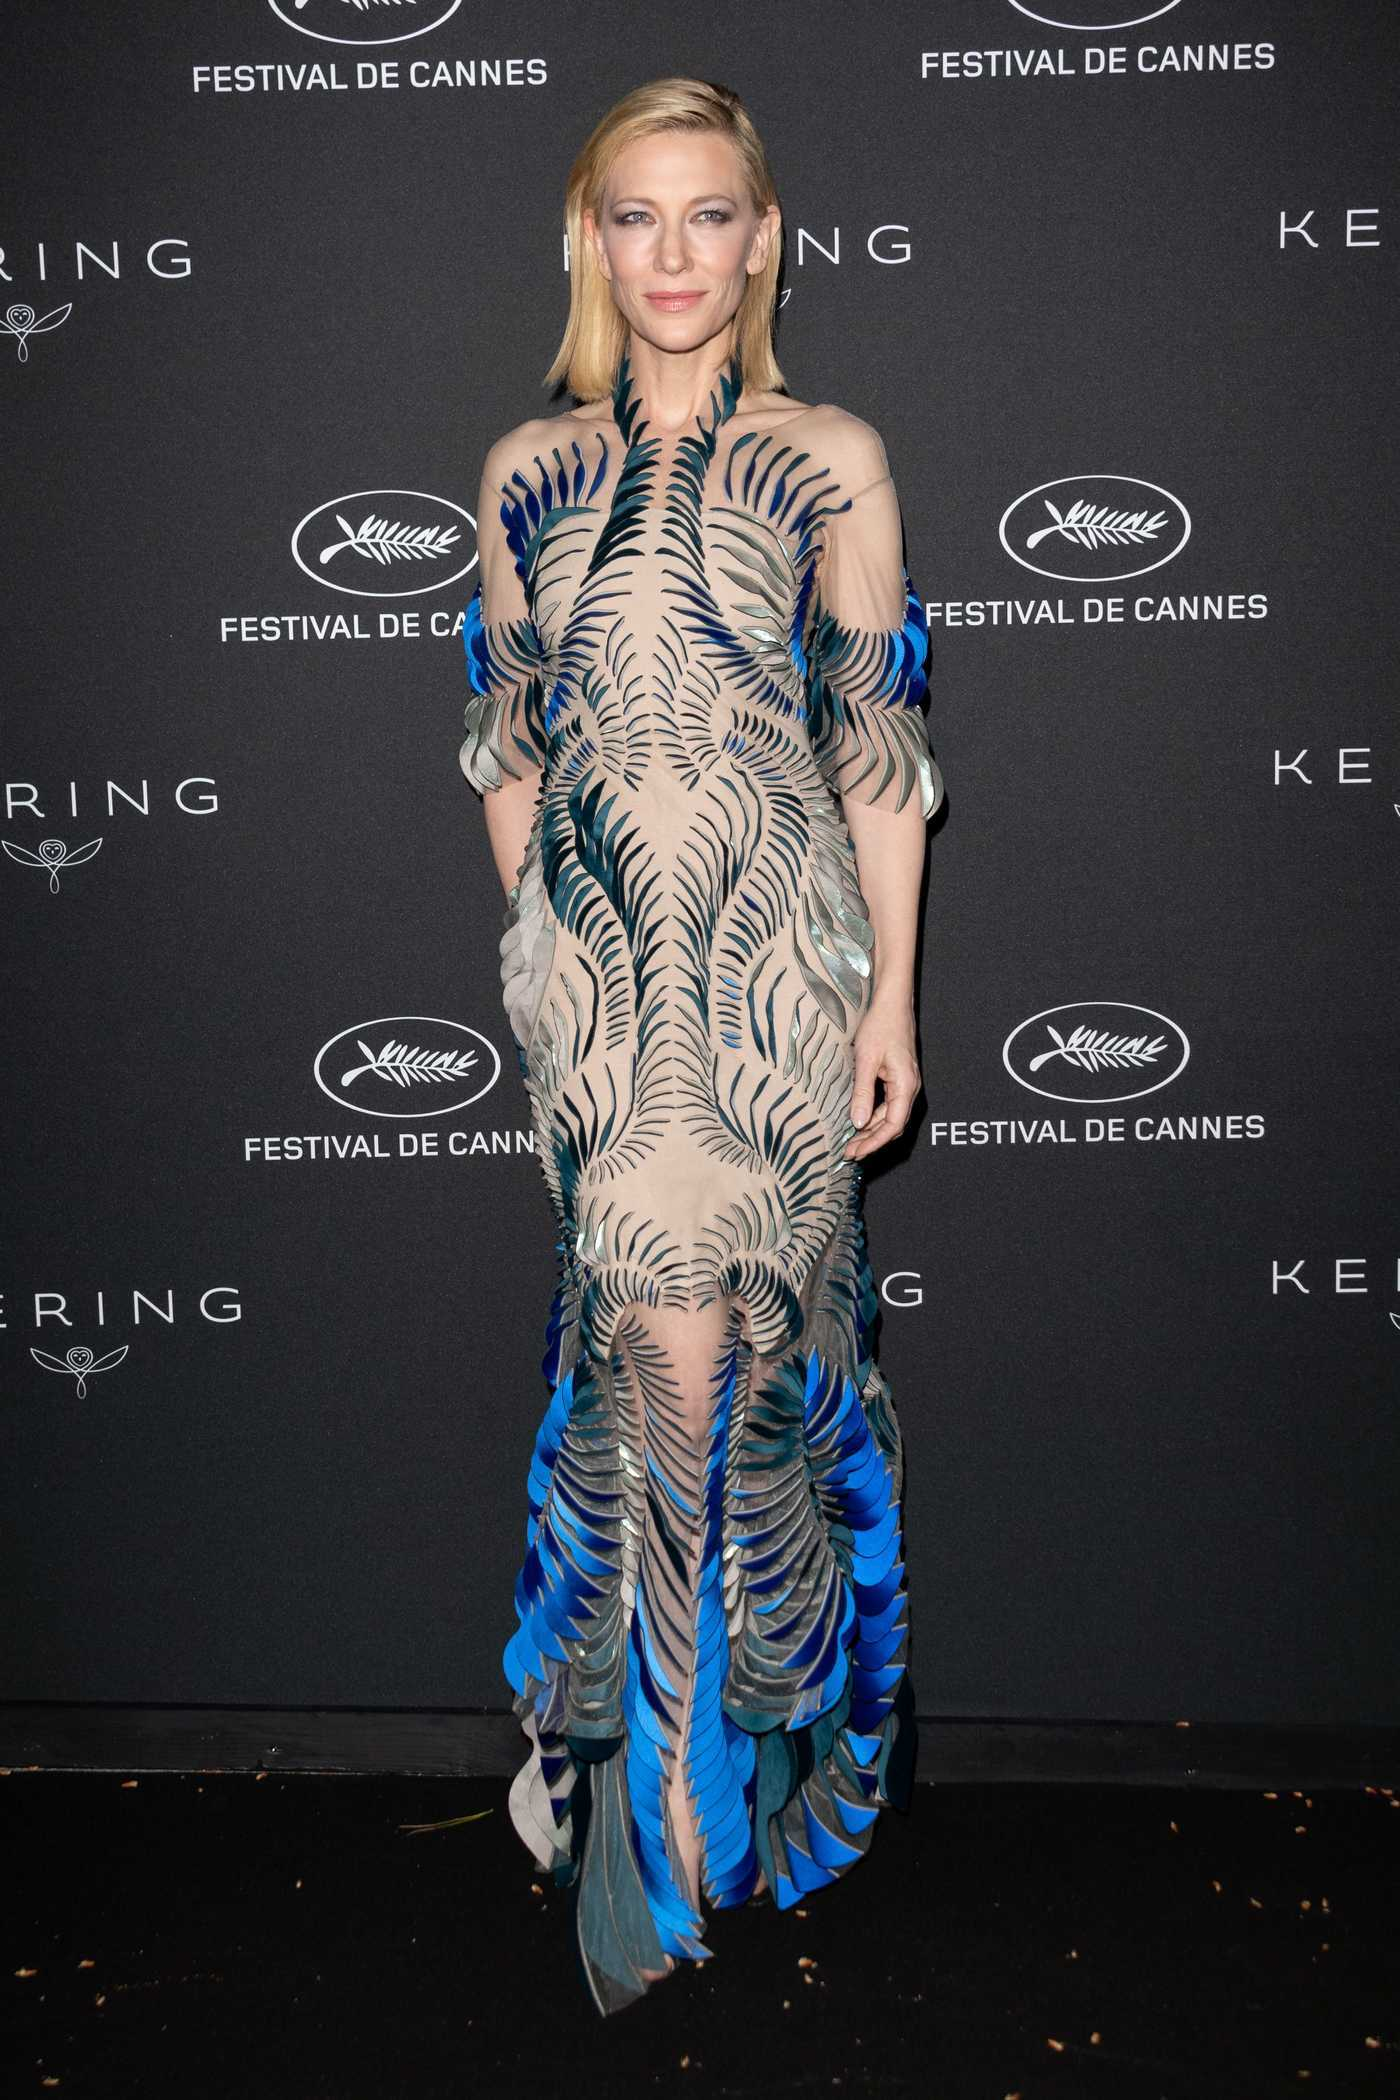 Cate Blanchett at the Kering Women in Motion Awards During the 71th Cannes Film Festival 05/14/2018